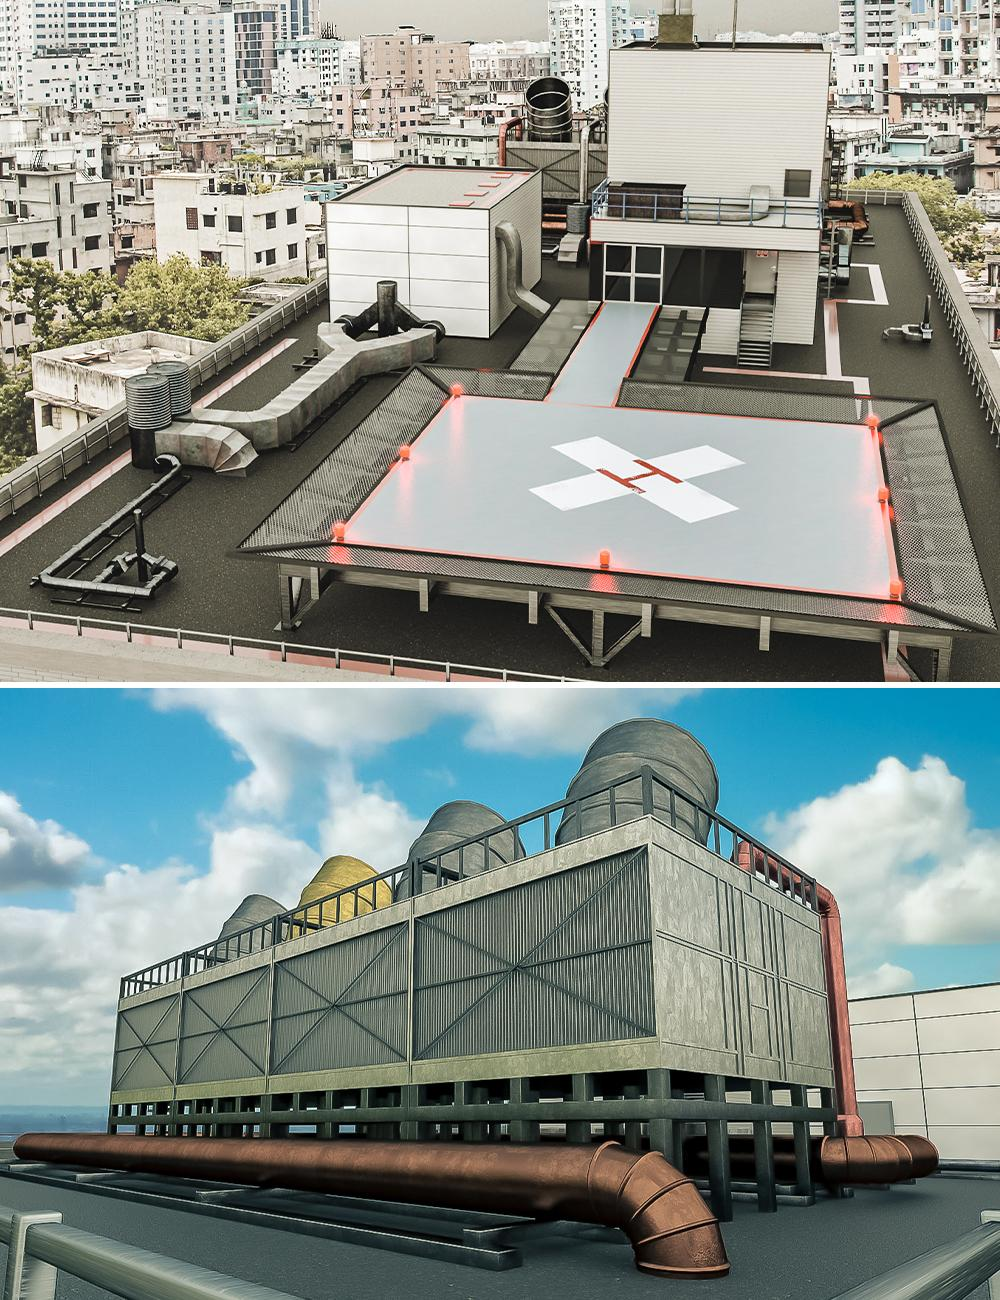 Hospital Helipad